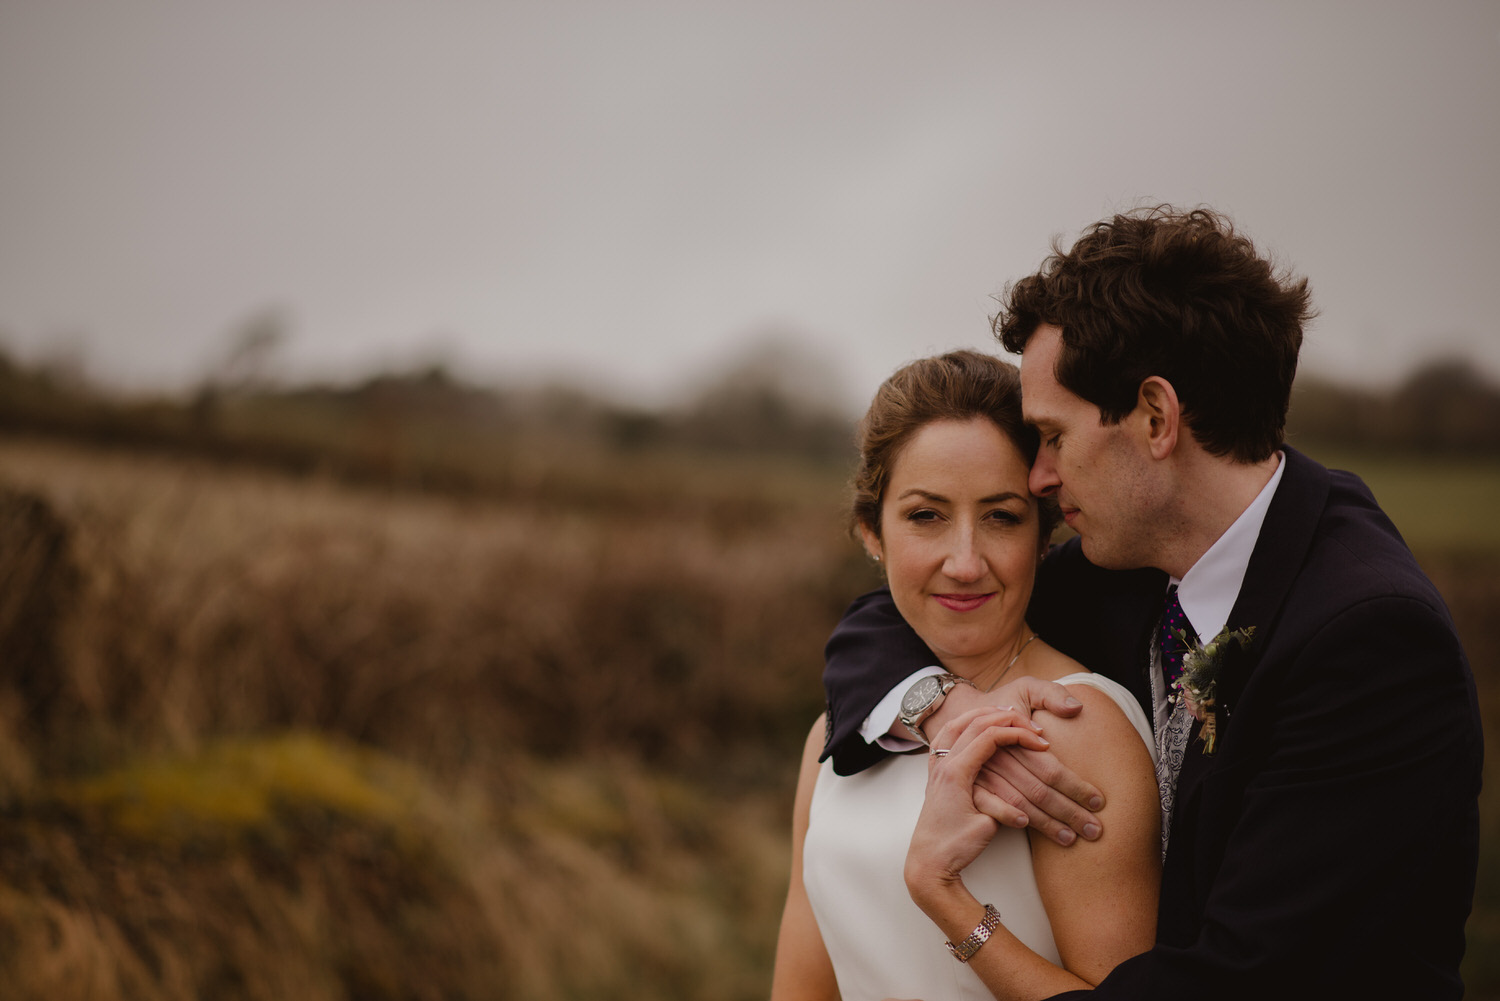 Tullyveery House Wedding Photography | M&C-274.jpg